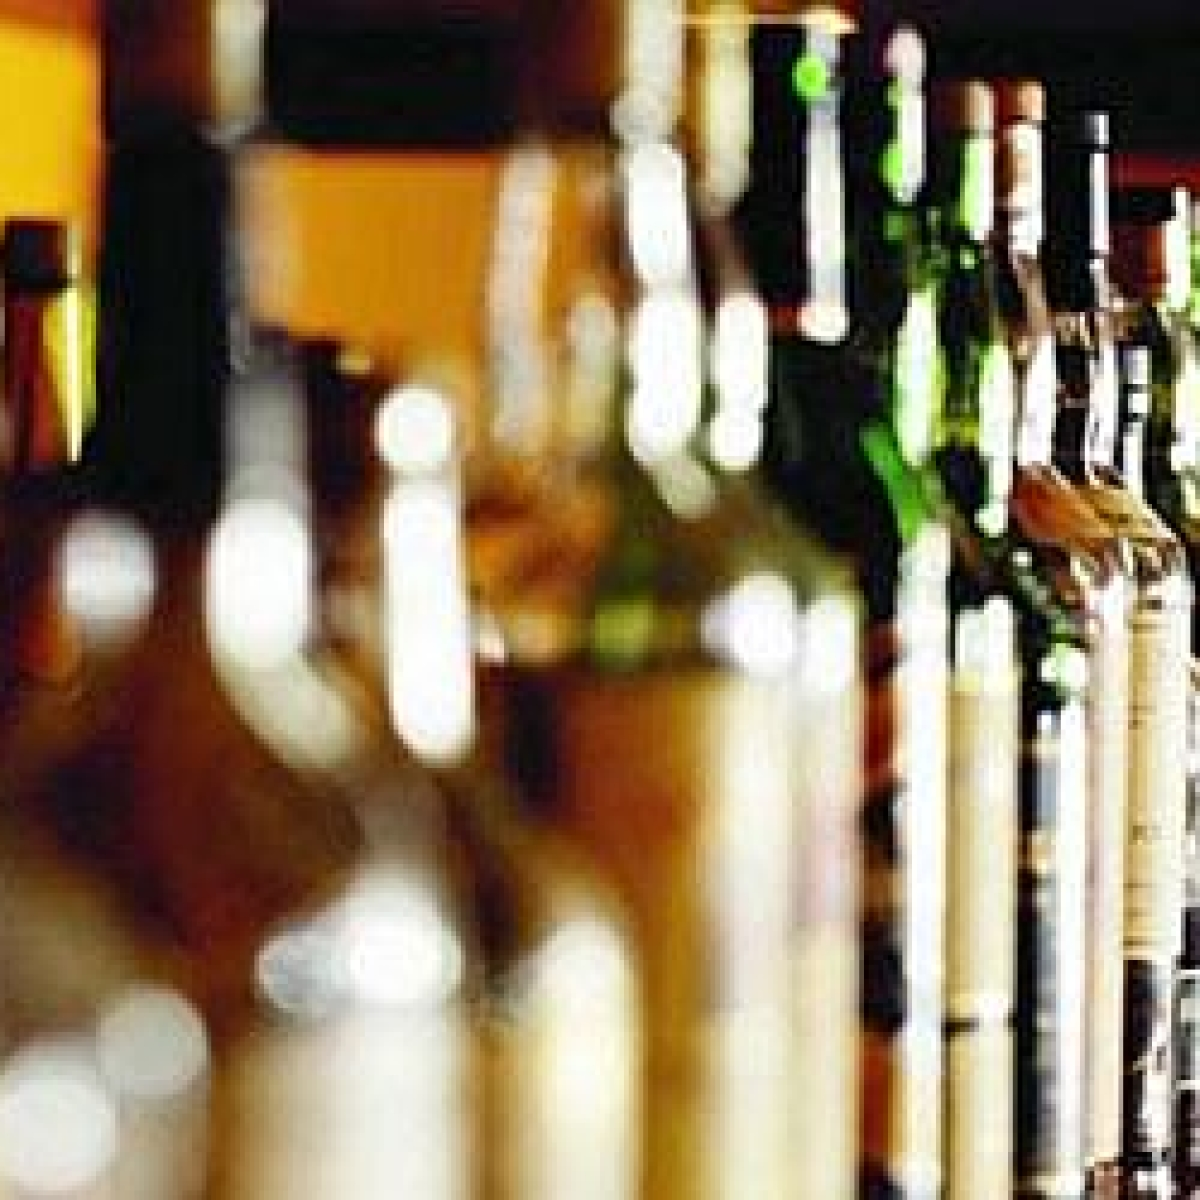 918 cases of Indian made foreign liquor seized in Baksa, Assam, for transportation without valid paperwork